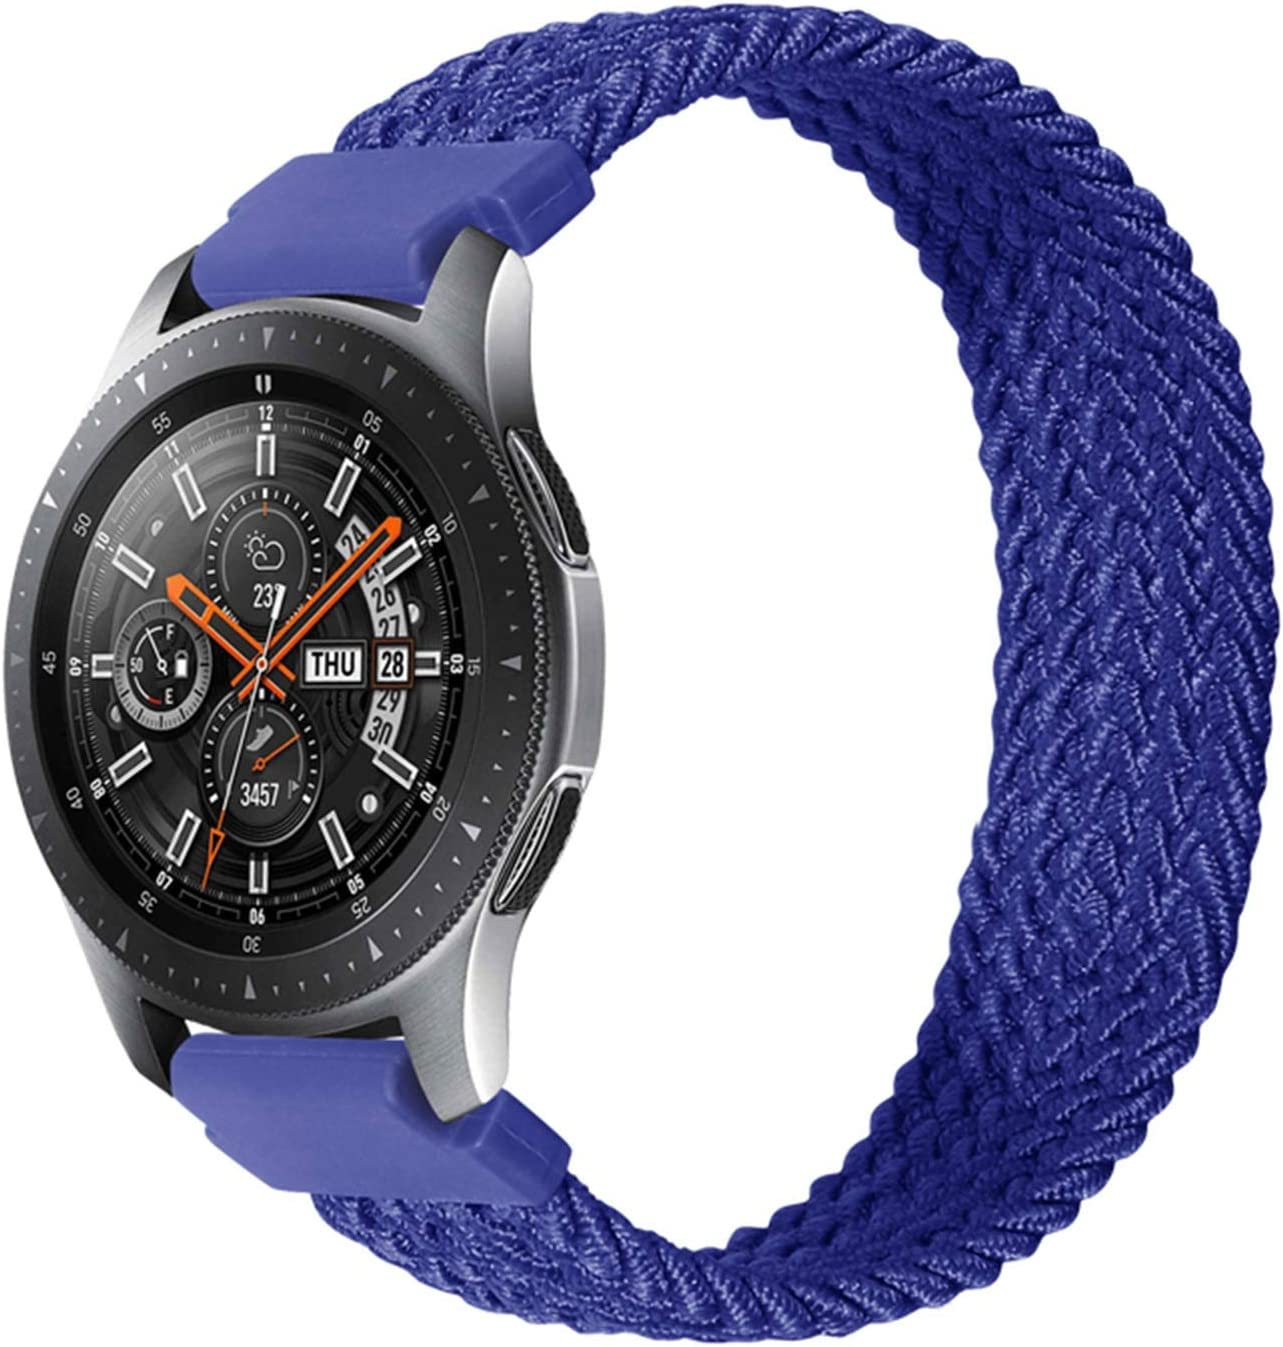 LJSKAFF 22mm 20mm Solo Loop Watch Department store for Strap Band Galaxy Max 88% OFF Samsung